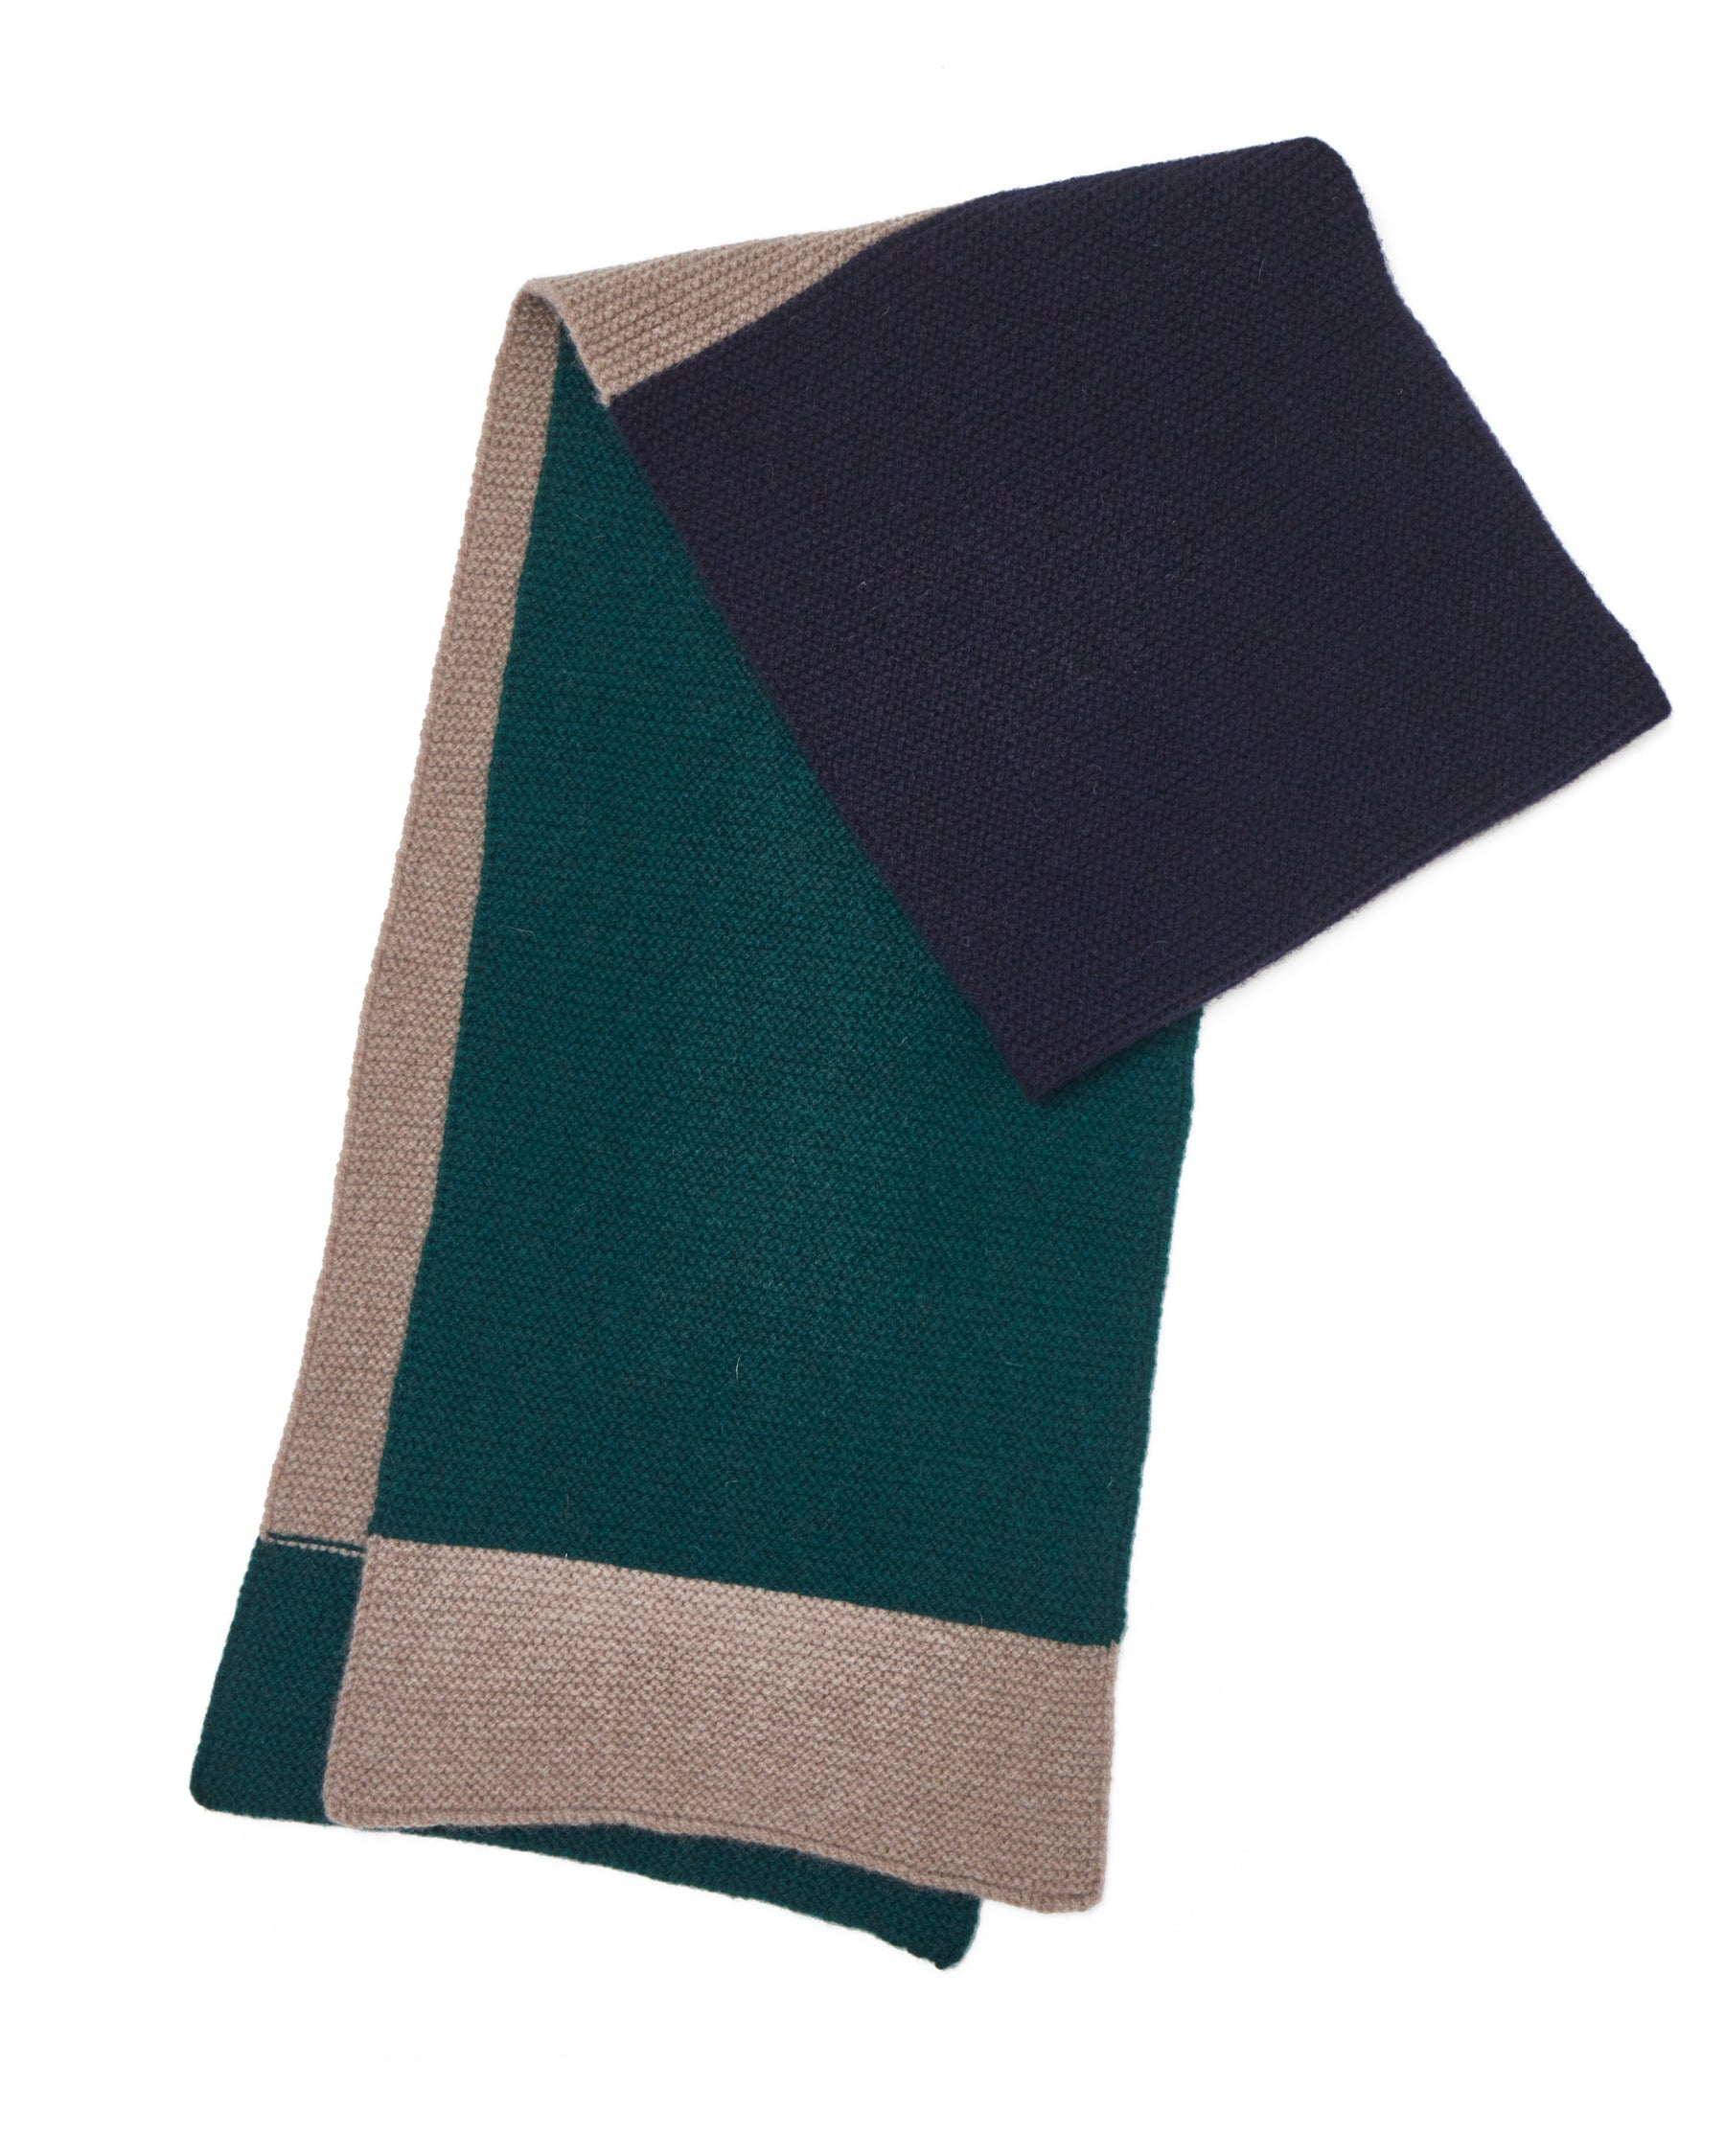 LINKS THREE STRIPE SCARF • GREEN